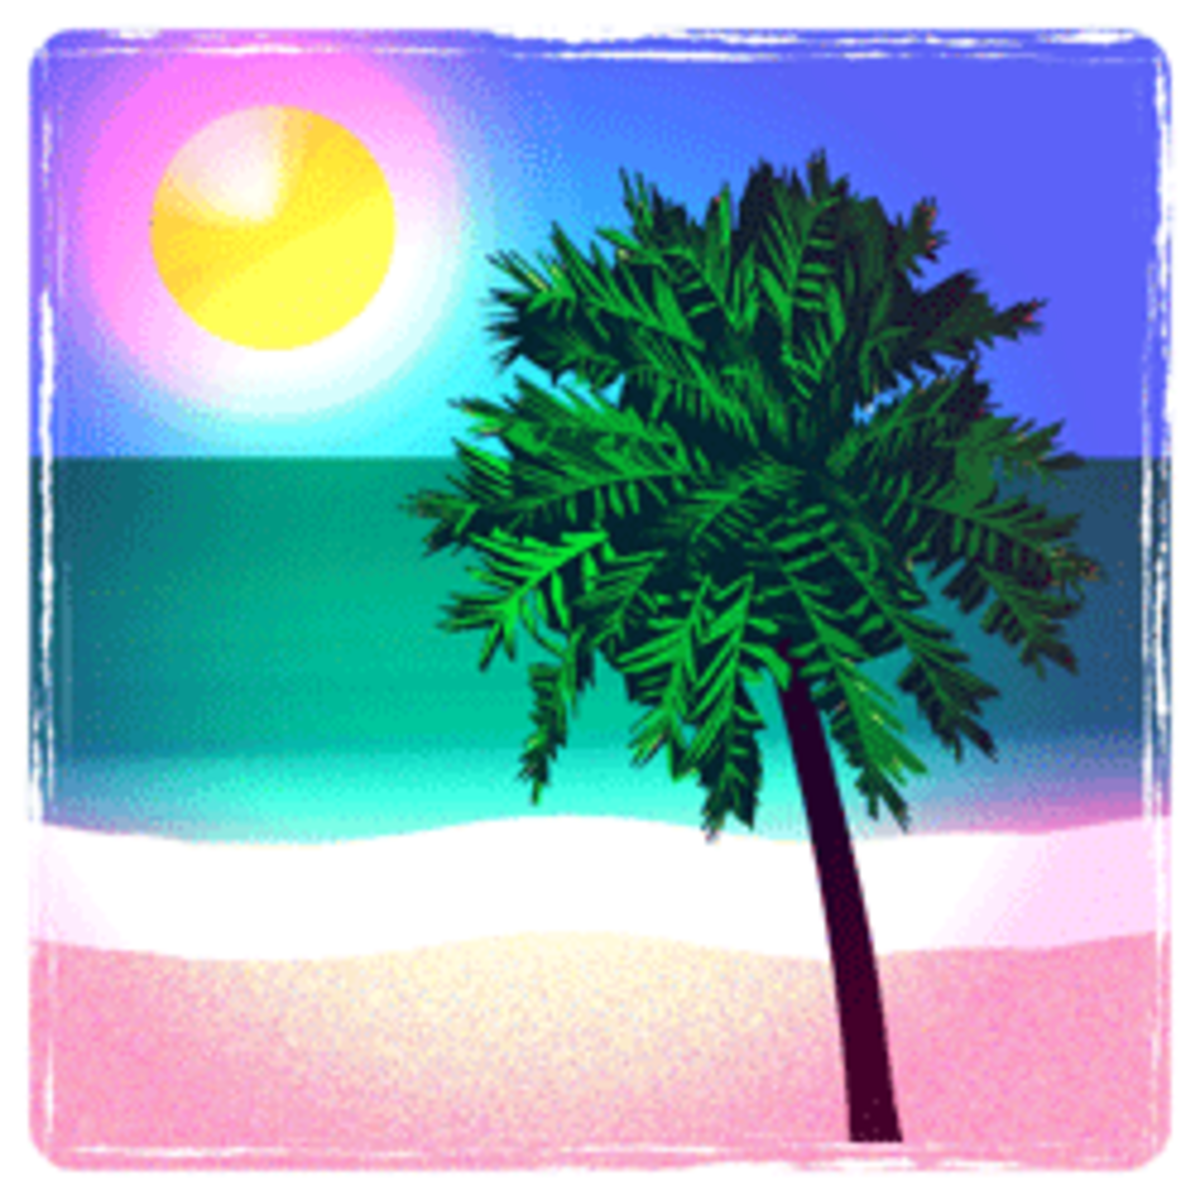 Free Summer Clip Art Images - Suns, Sunsets, Beach & More!